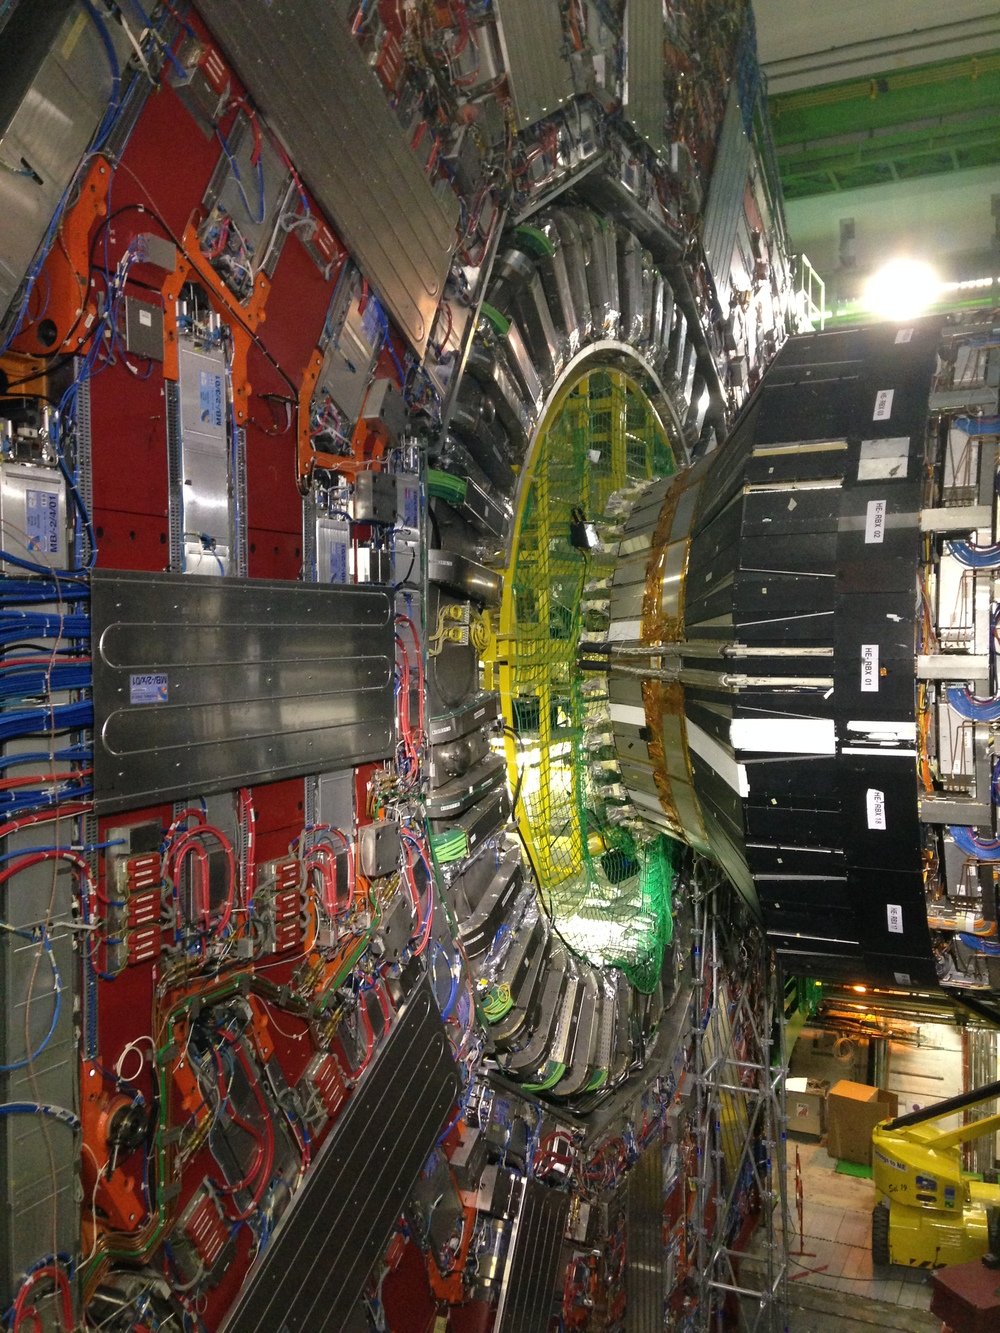 The Compact Muon Solenoid (CMS) detector on the LHC. Photo: Wikipedia